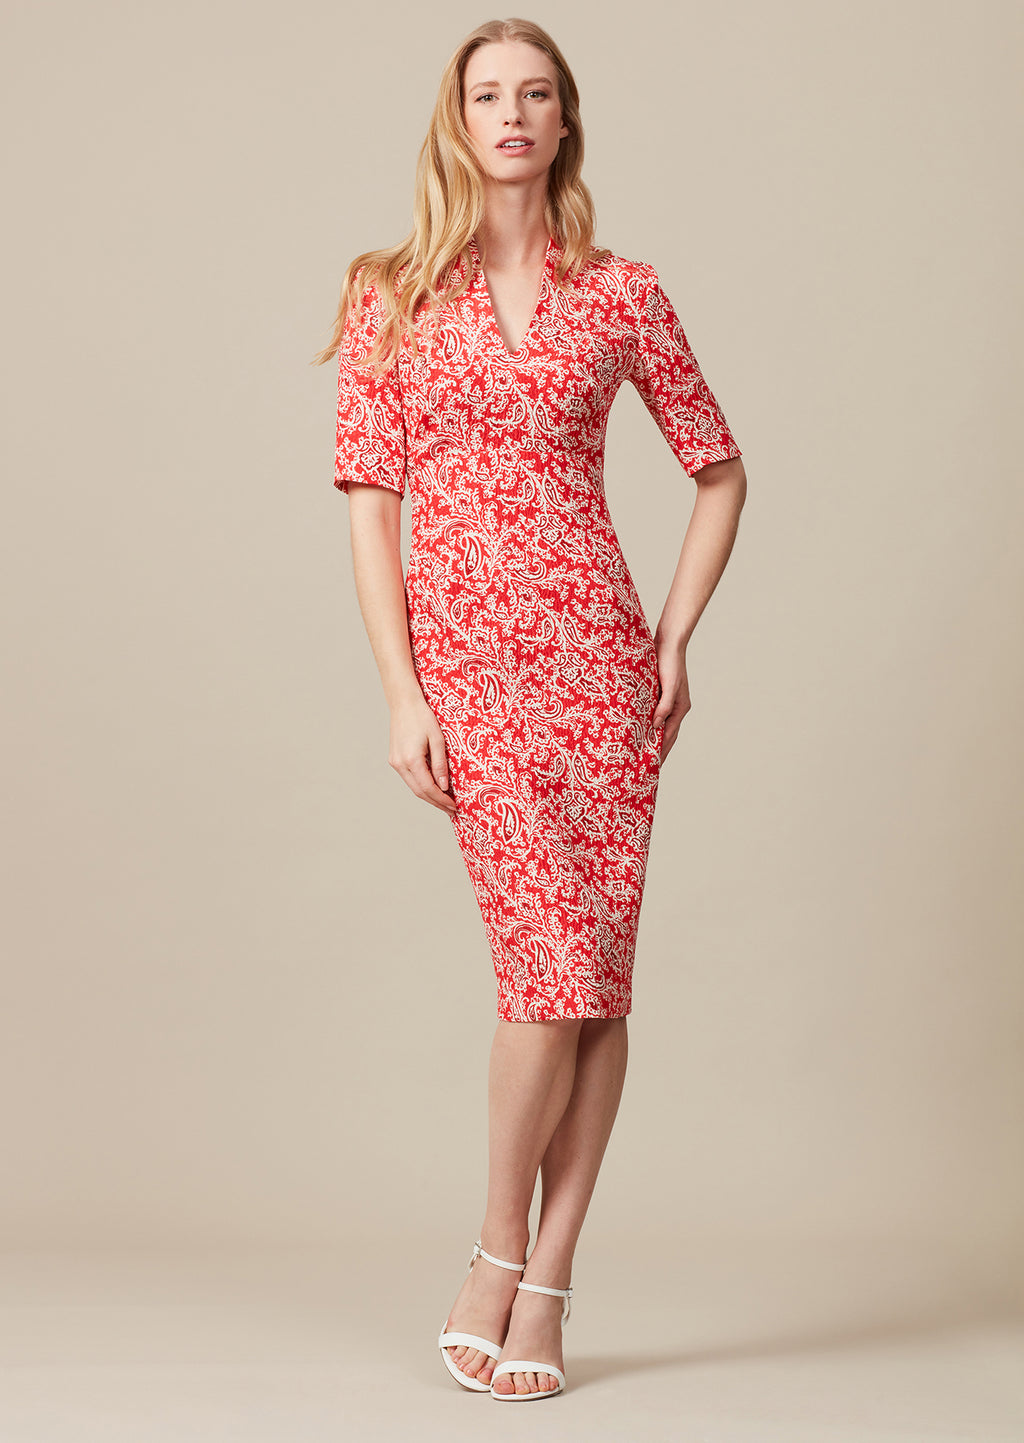 Scarlet  Cloqué Print  knee-length dress with elbow length sleeves and V-neck.